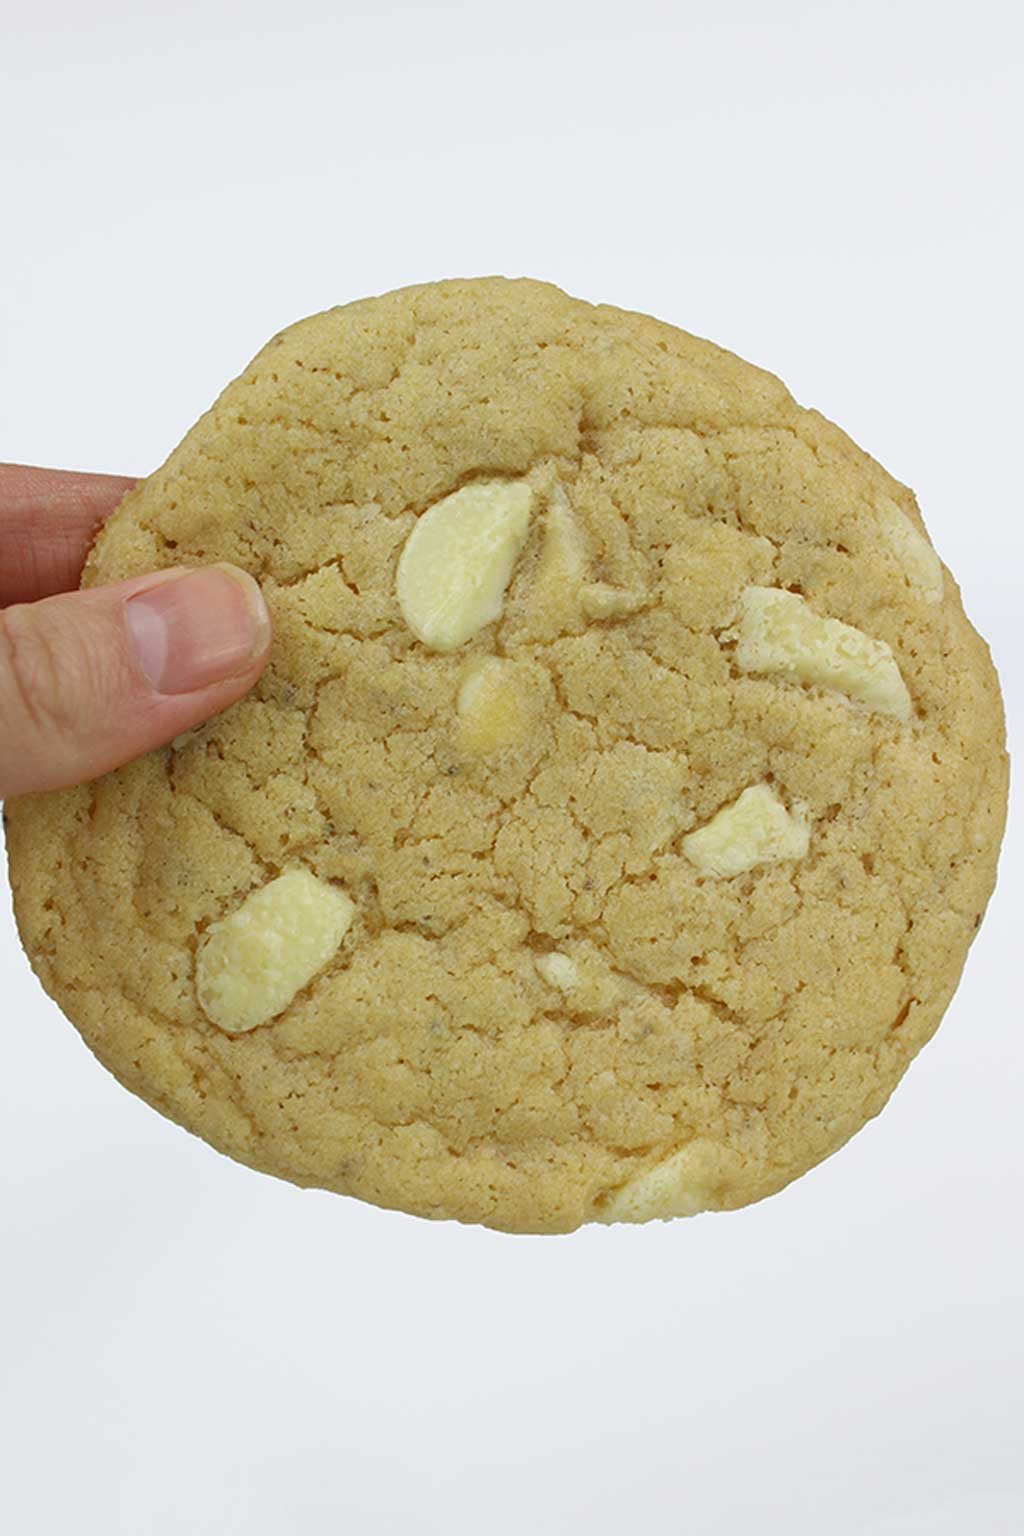 a hand holding up 1 large white chocolate chip cookie